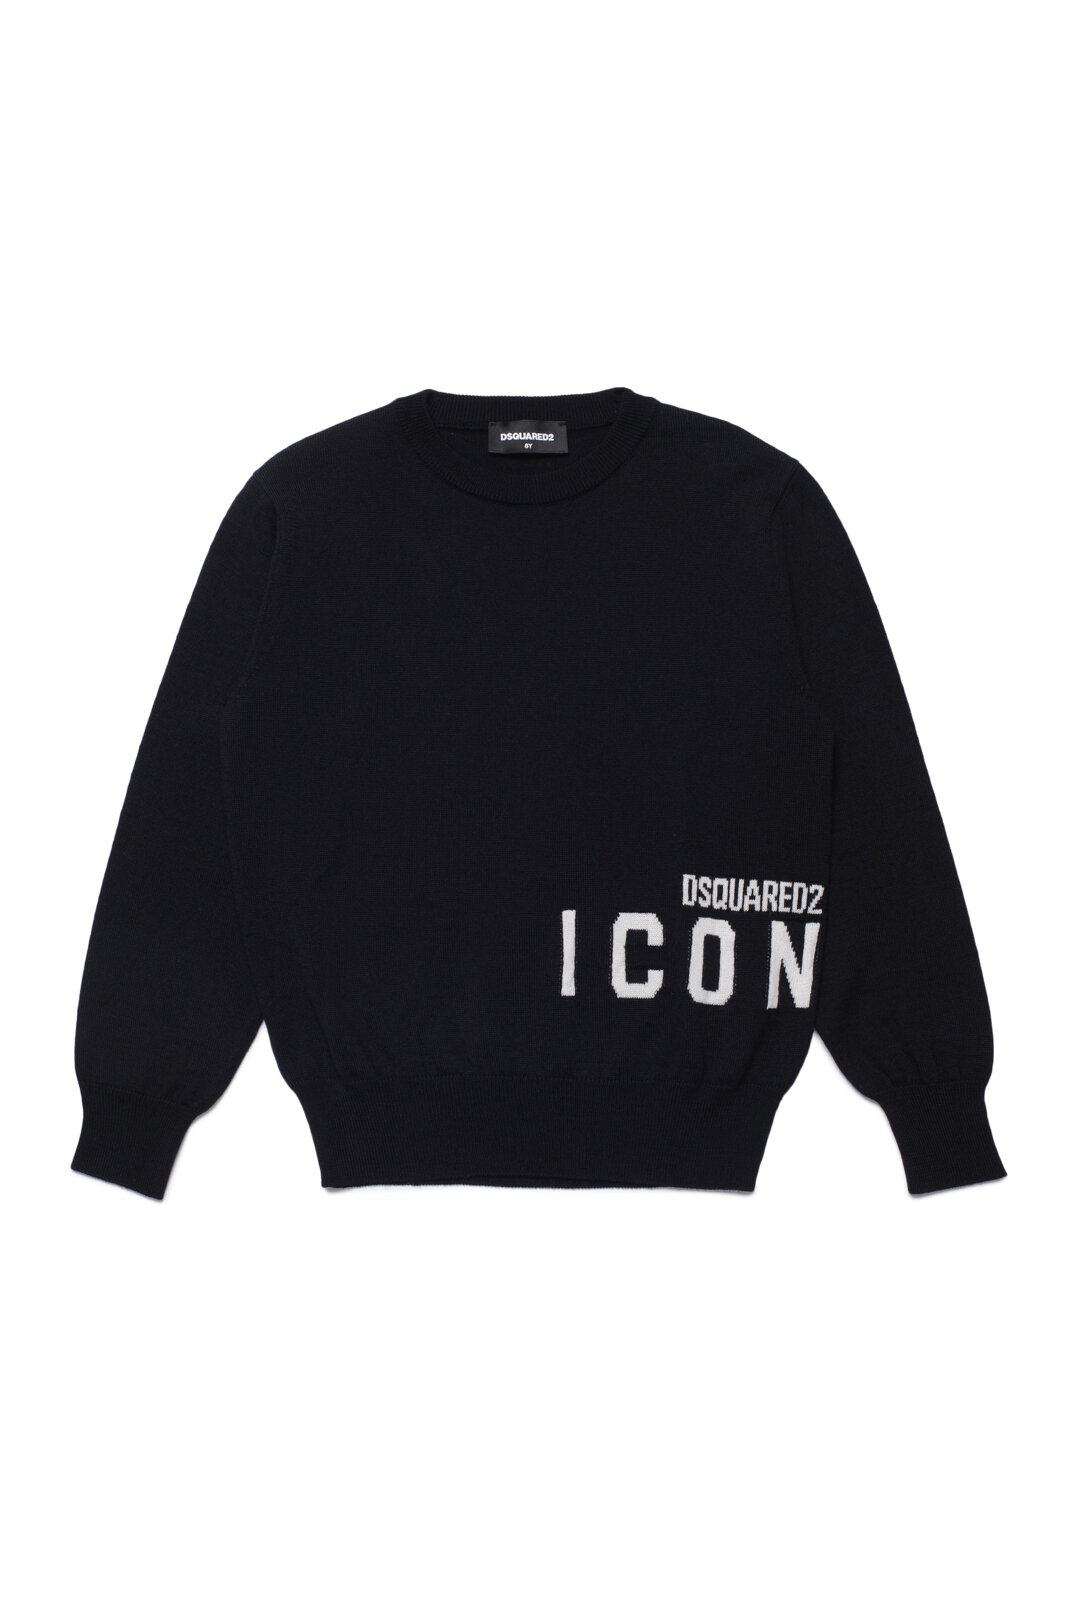 Icon Maglia - Dsquared2 Junior